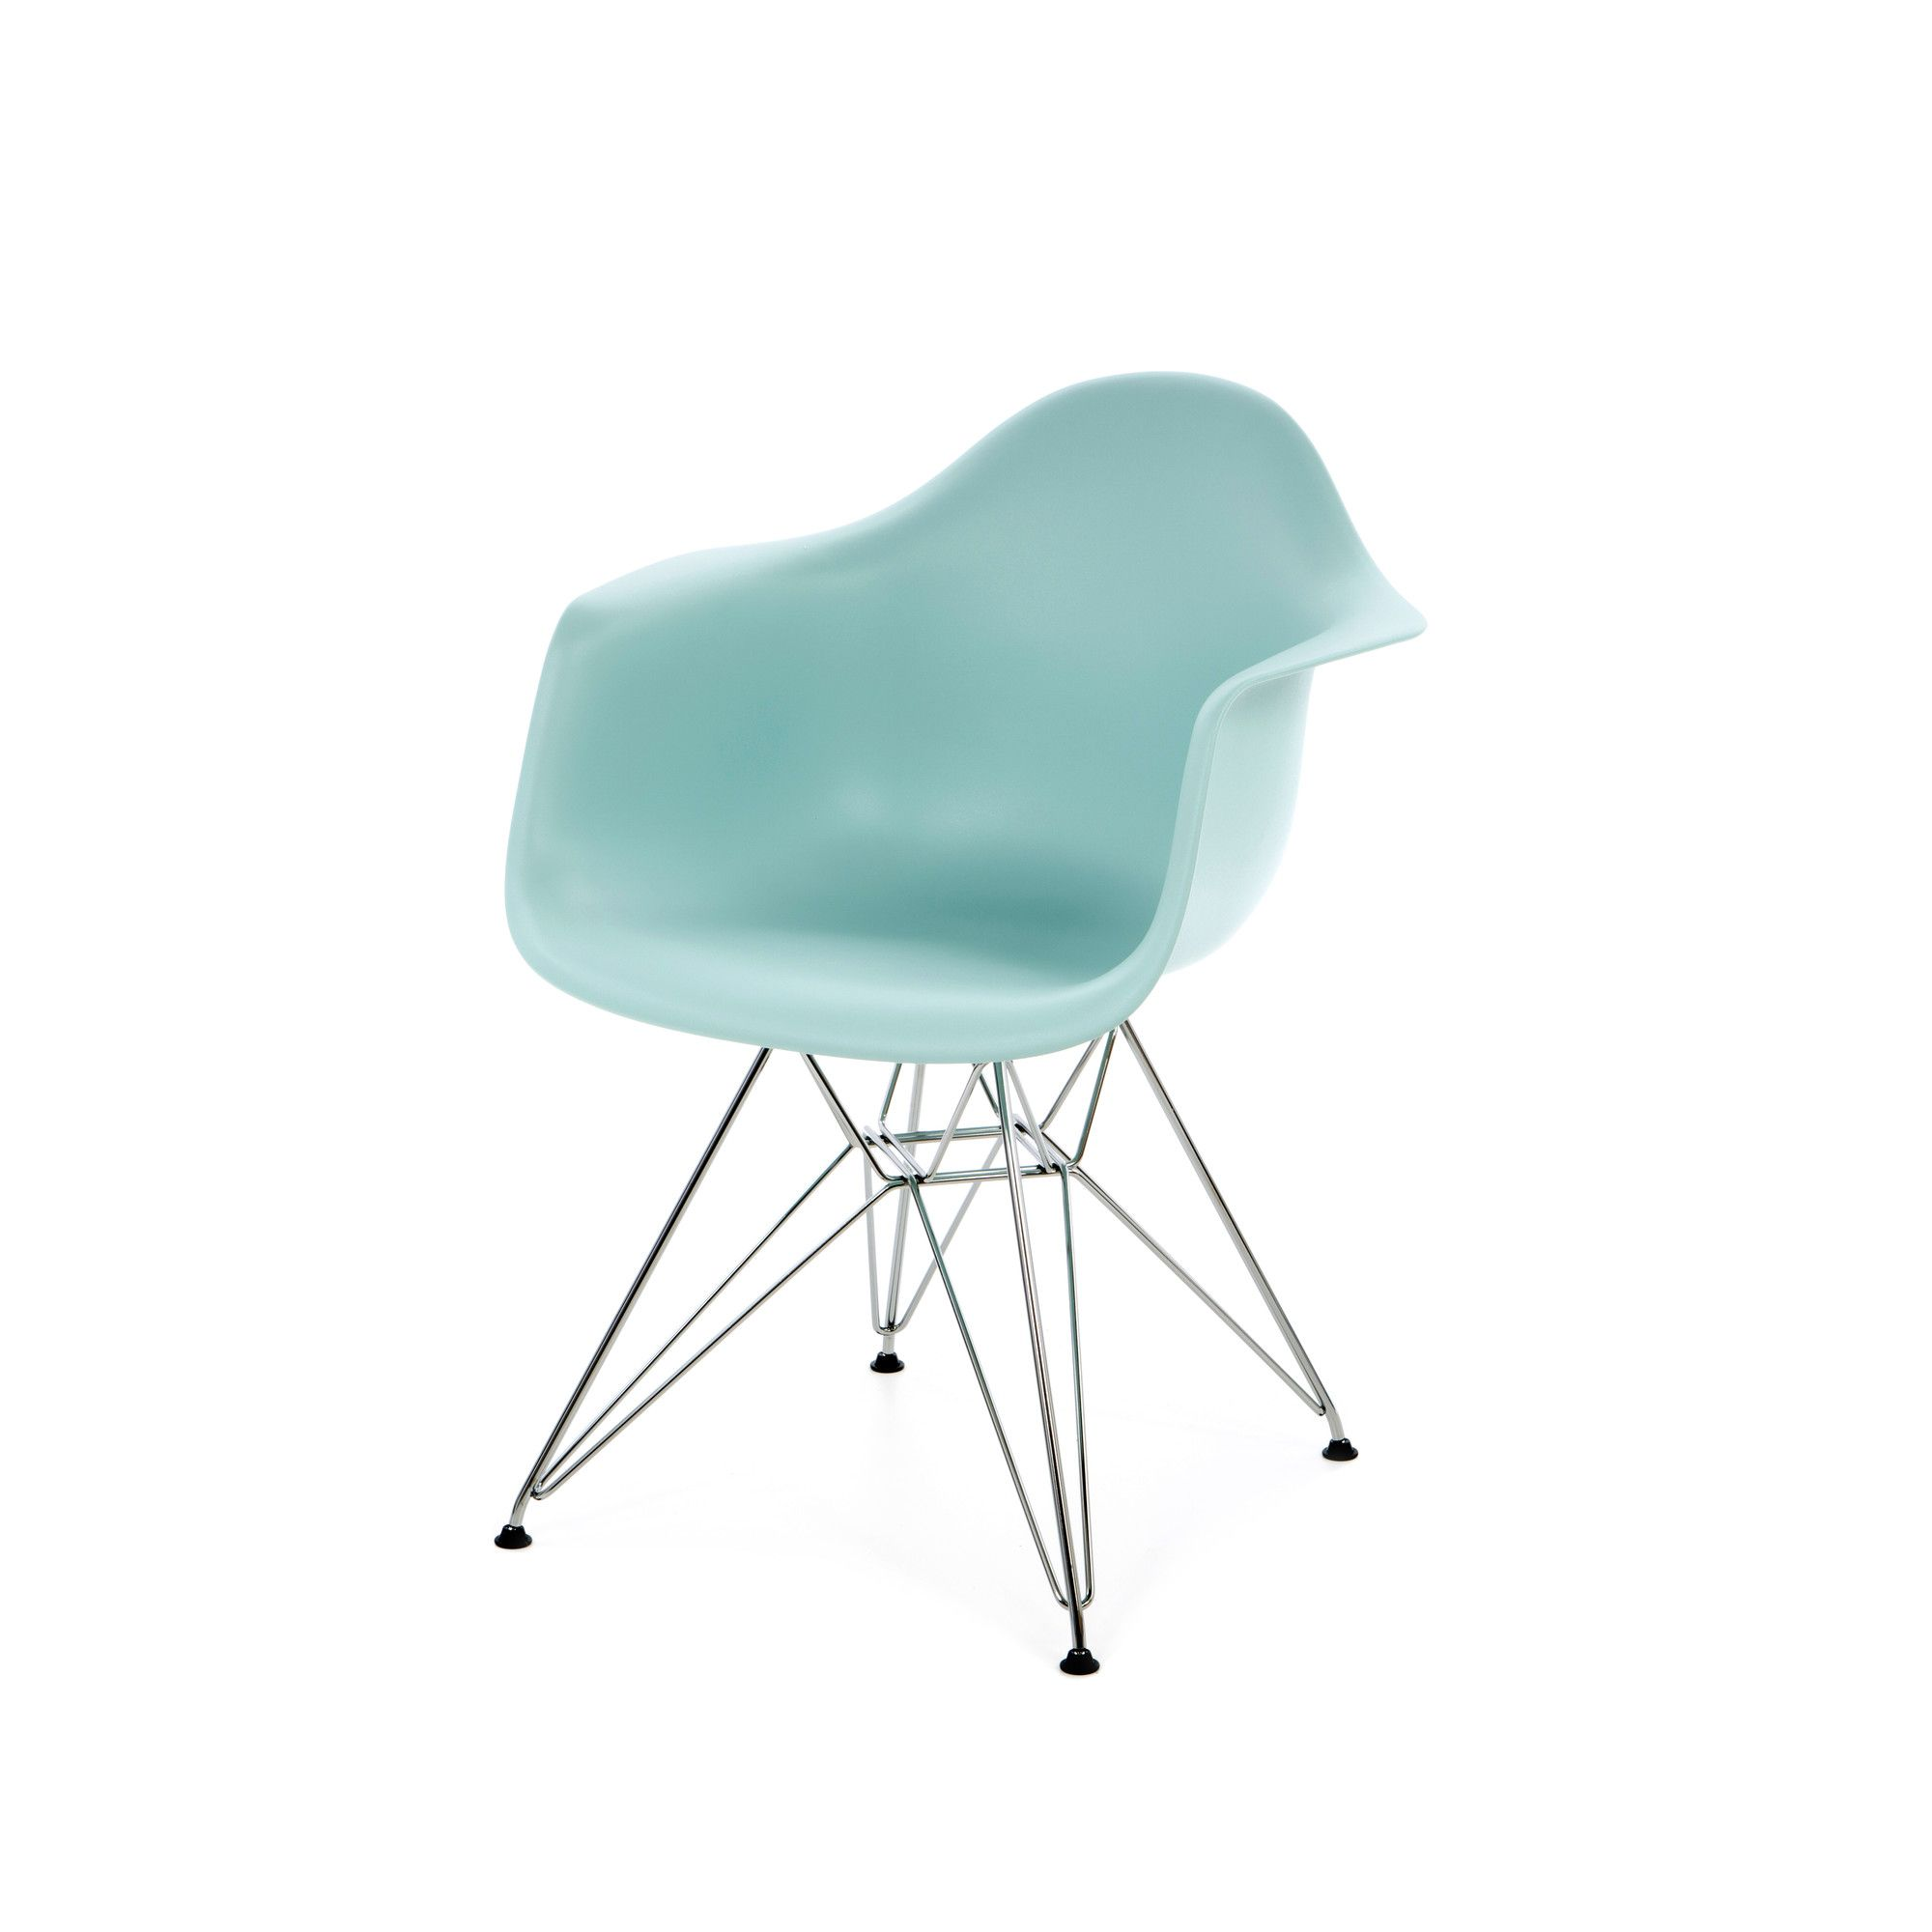 Herman Miller Eames Dar Molded Plastic Arm Chair With Wire Base Allmodern Chair Plastic Arm Chair Outdoor Lounge Chair Cushions